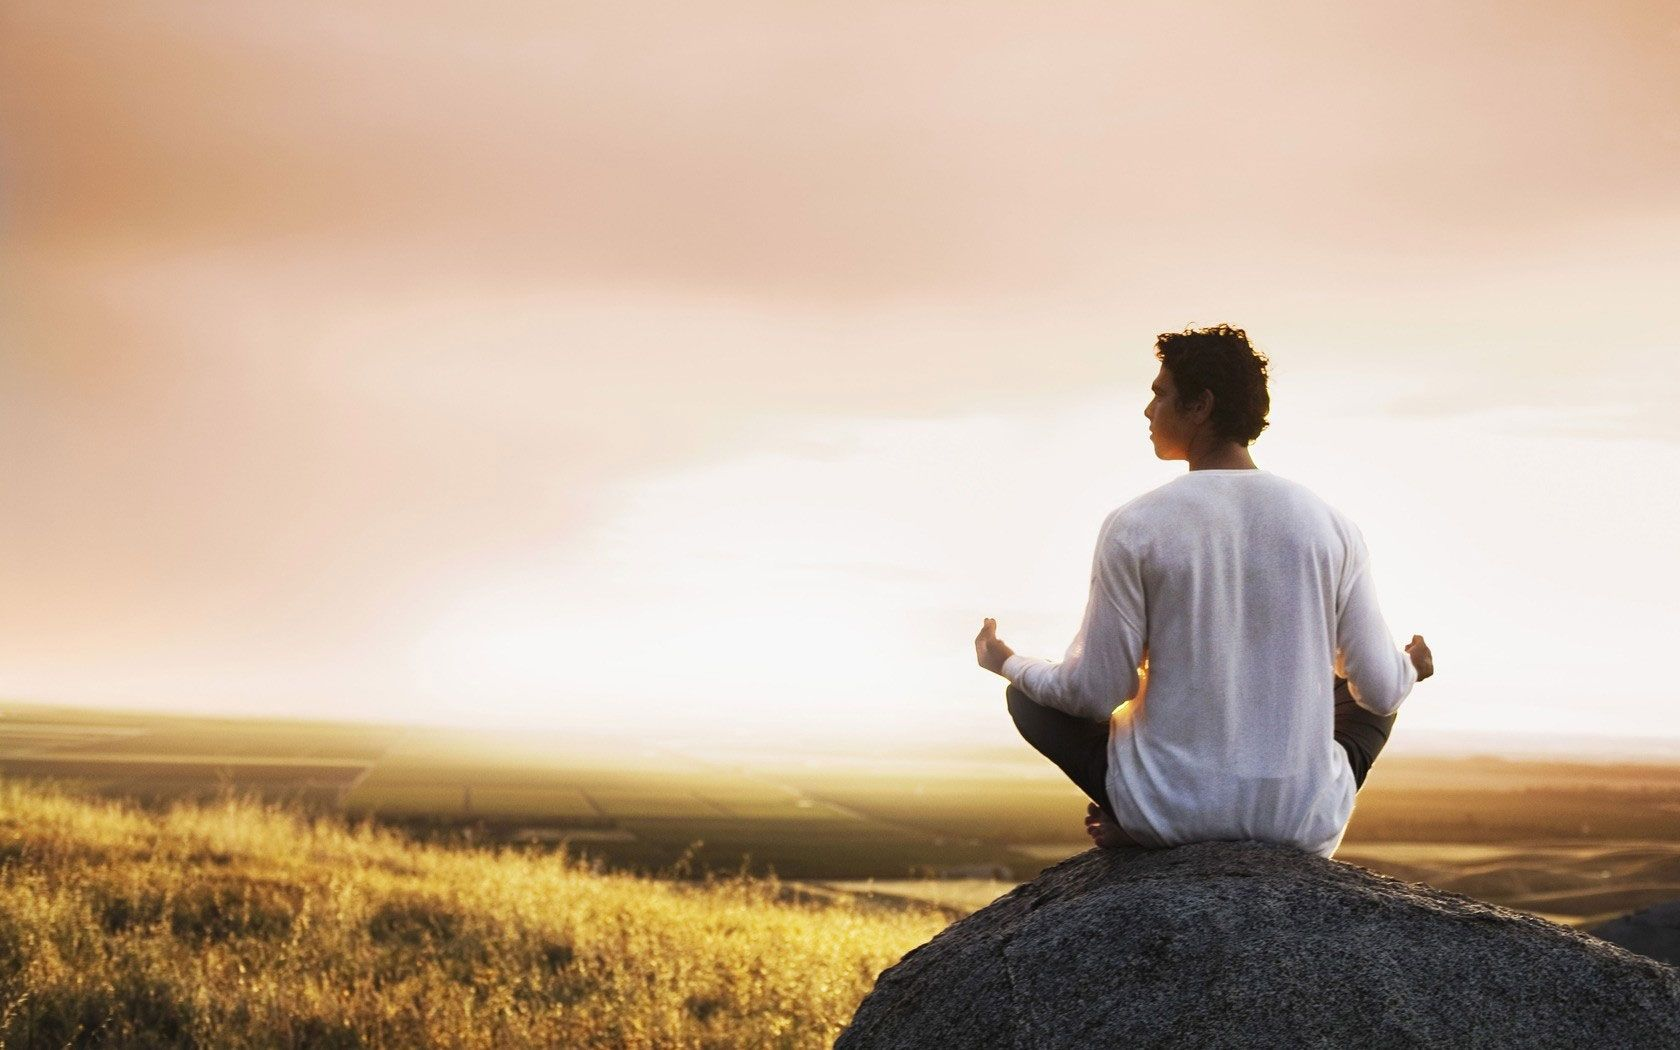 Meditation HD Wallpaper Free Download